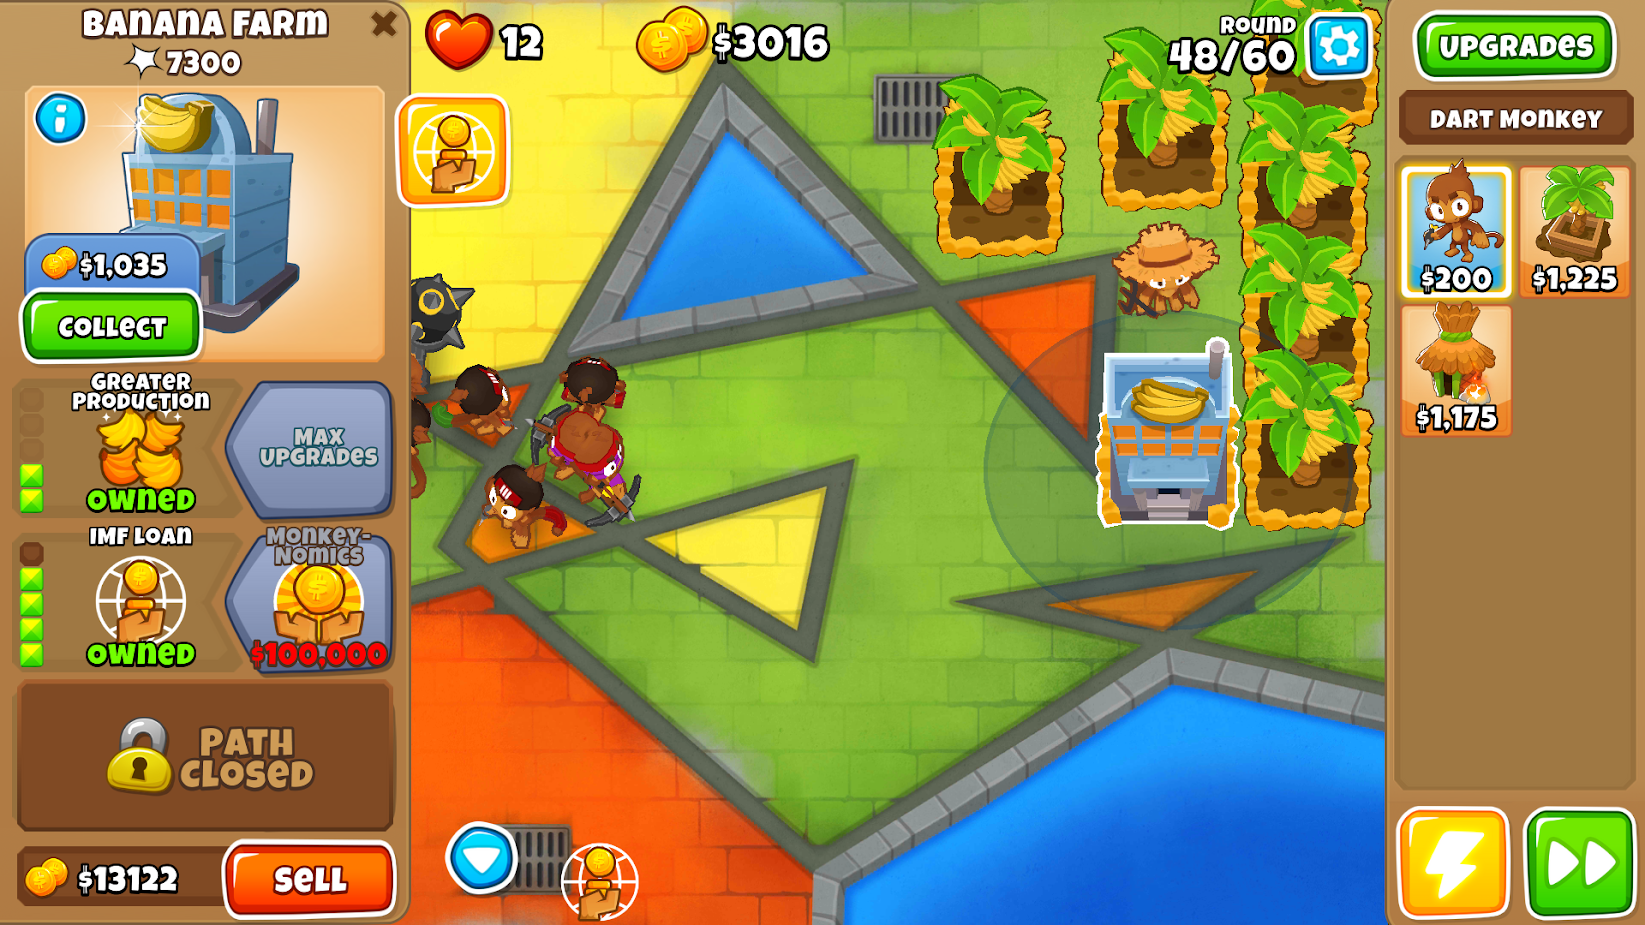 BTD6 Banana Farm Comparison - Farm Guide - Which One Is Best